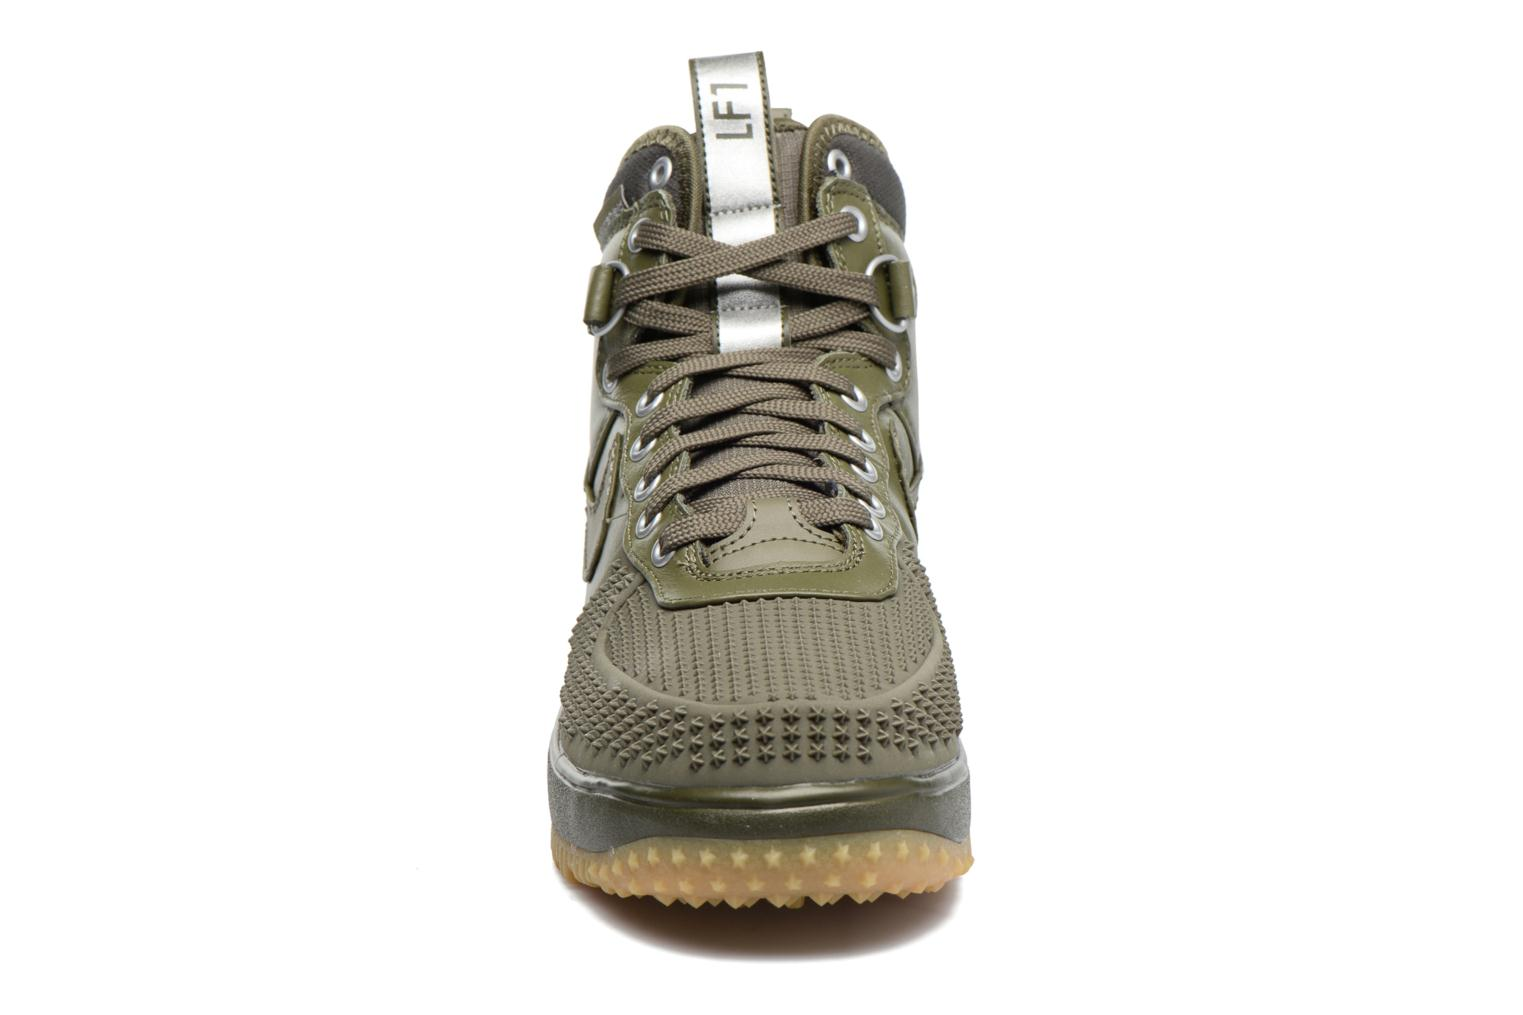 Lunar Force 1 Duckboot Medium Olive/Medium Olive